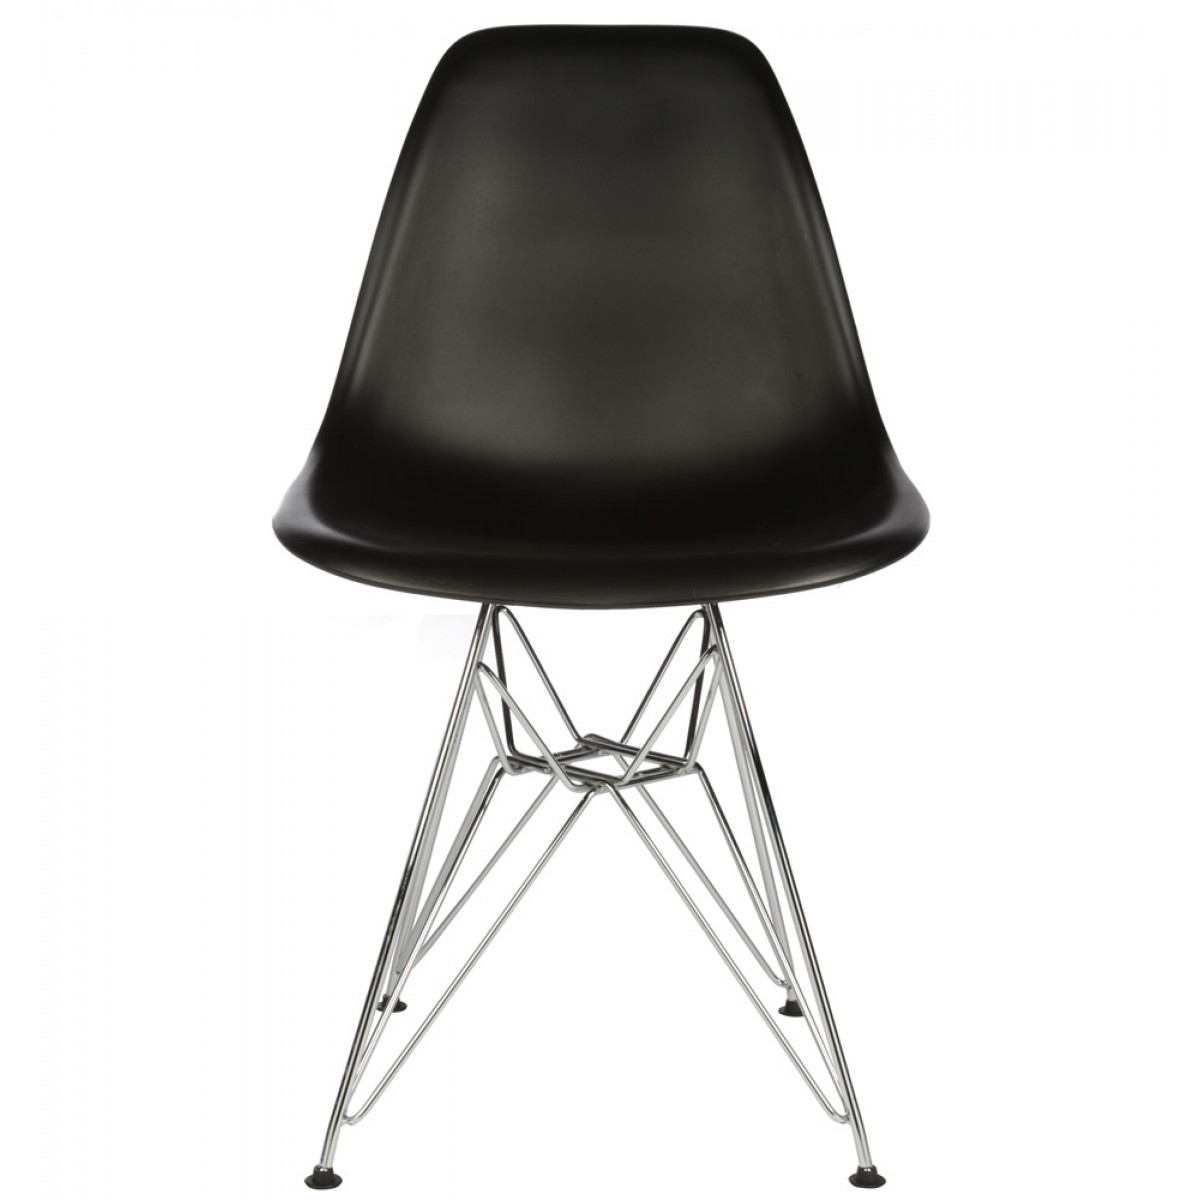 plastic chairs with steel legs swivel office wheels set of 4 eames style dsr molded black dining shell